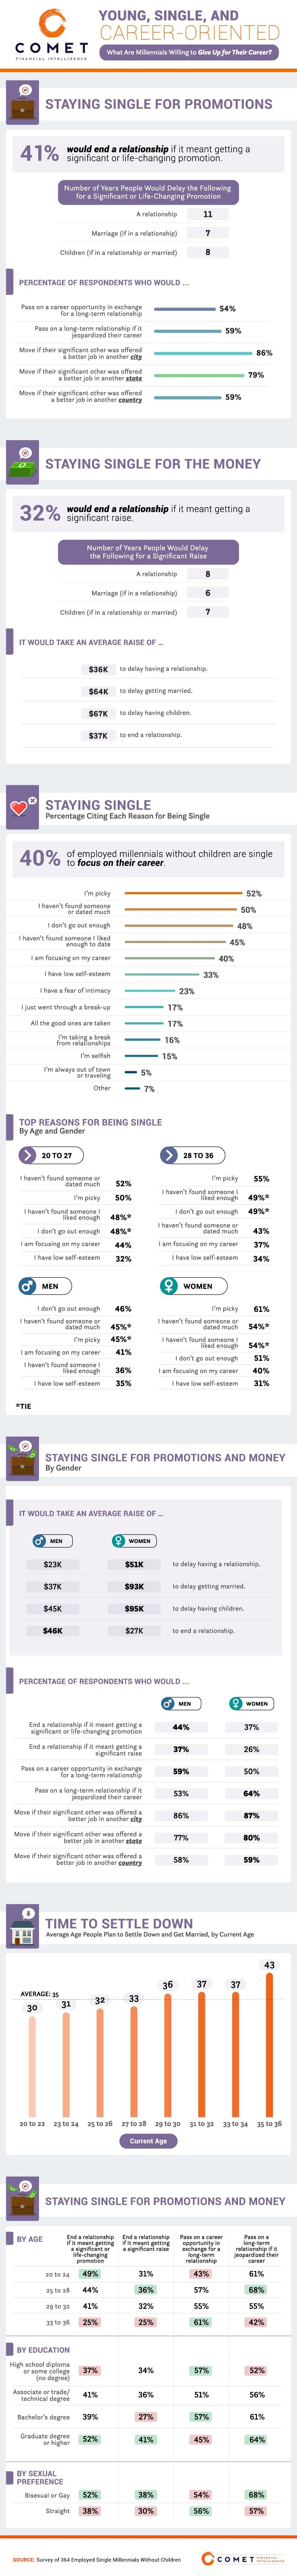 This infographic reveals how many young people would stay single to focus on work and how many would break up with a significant other if it meant getting a promotion or raise. Keep reading to learn more.